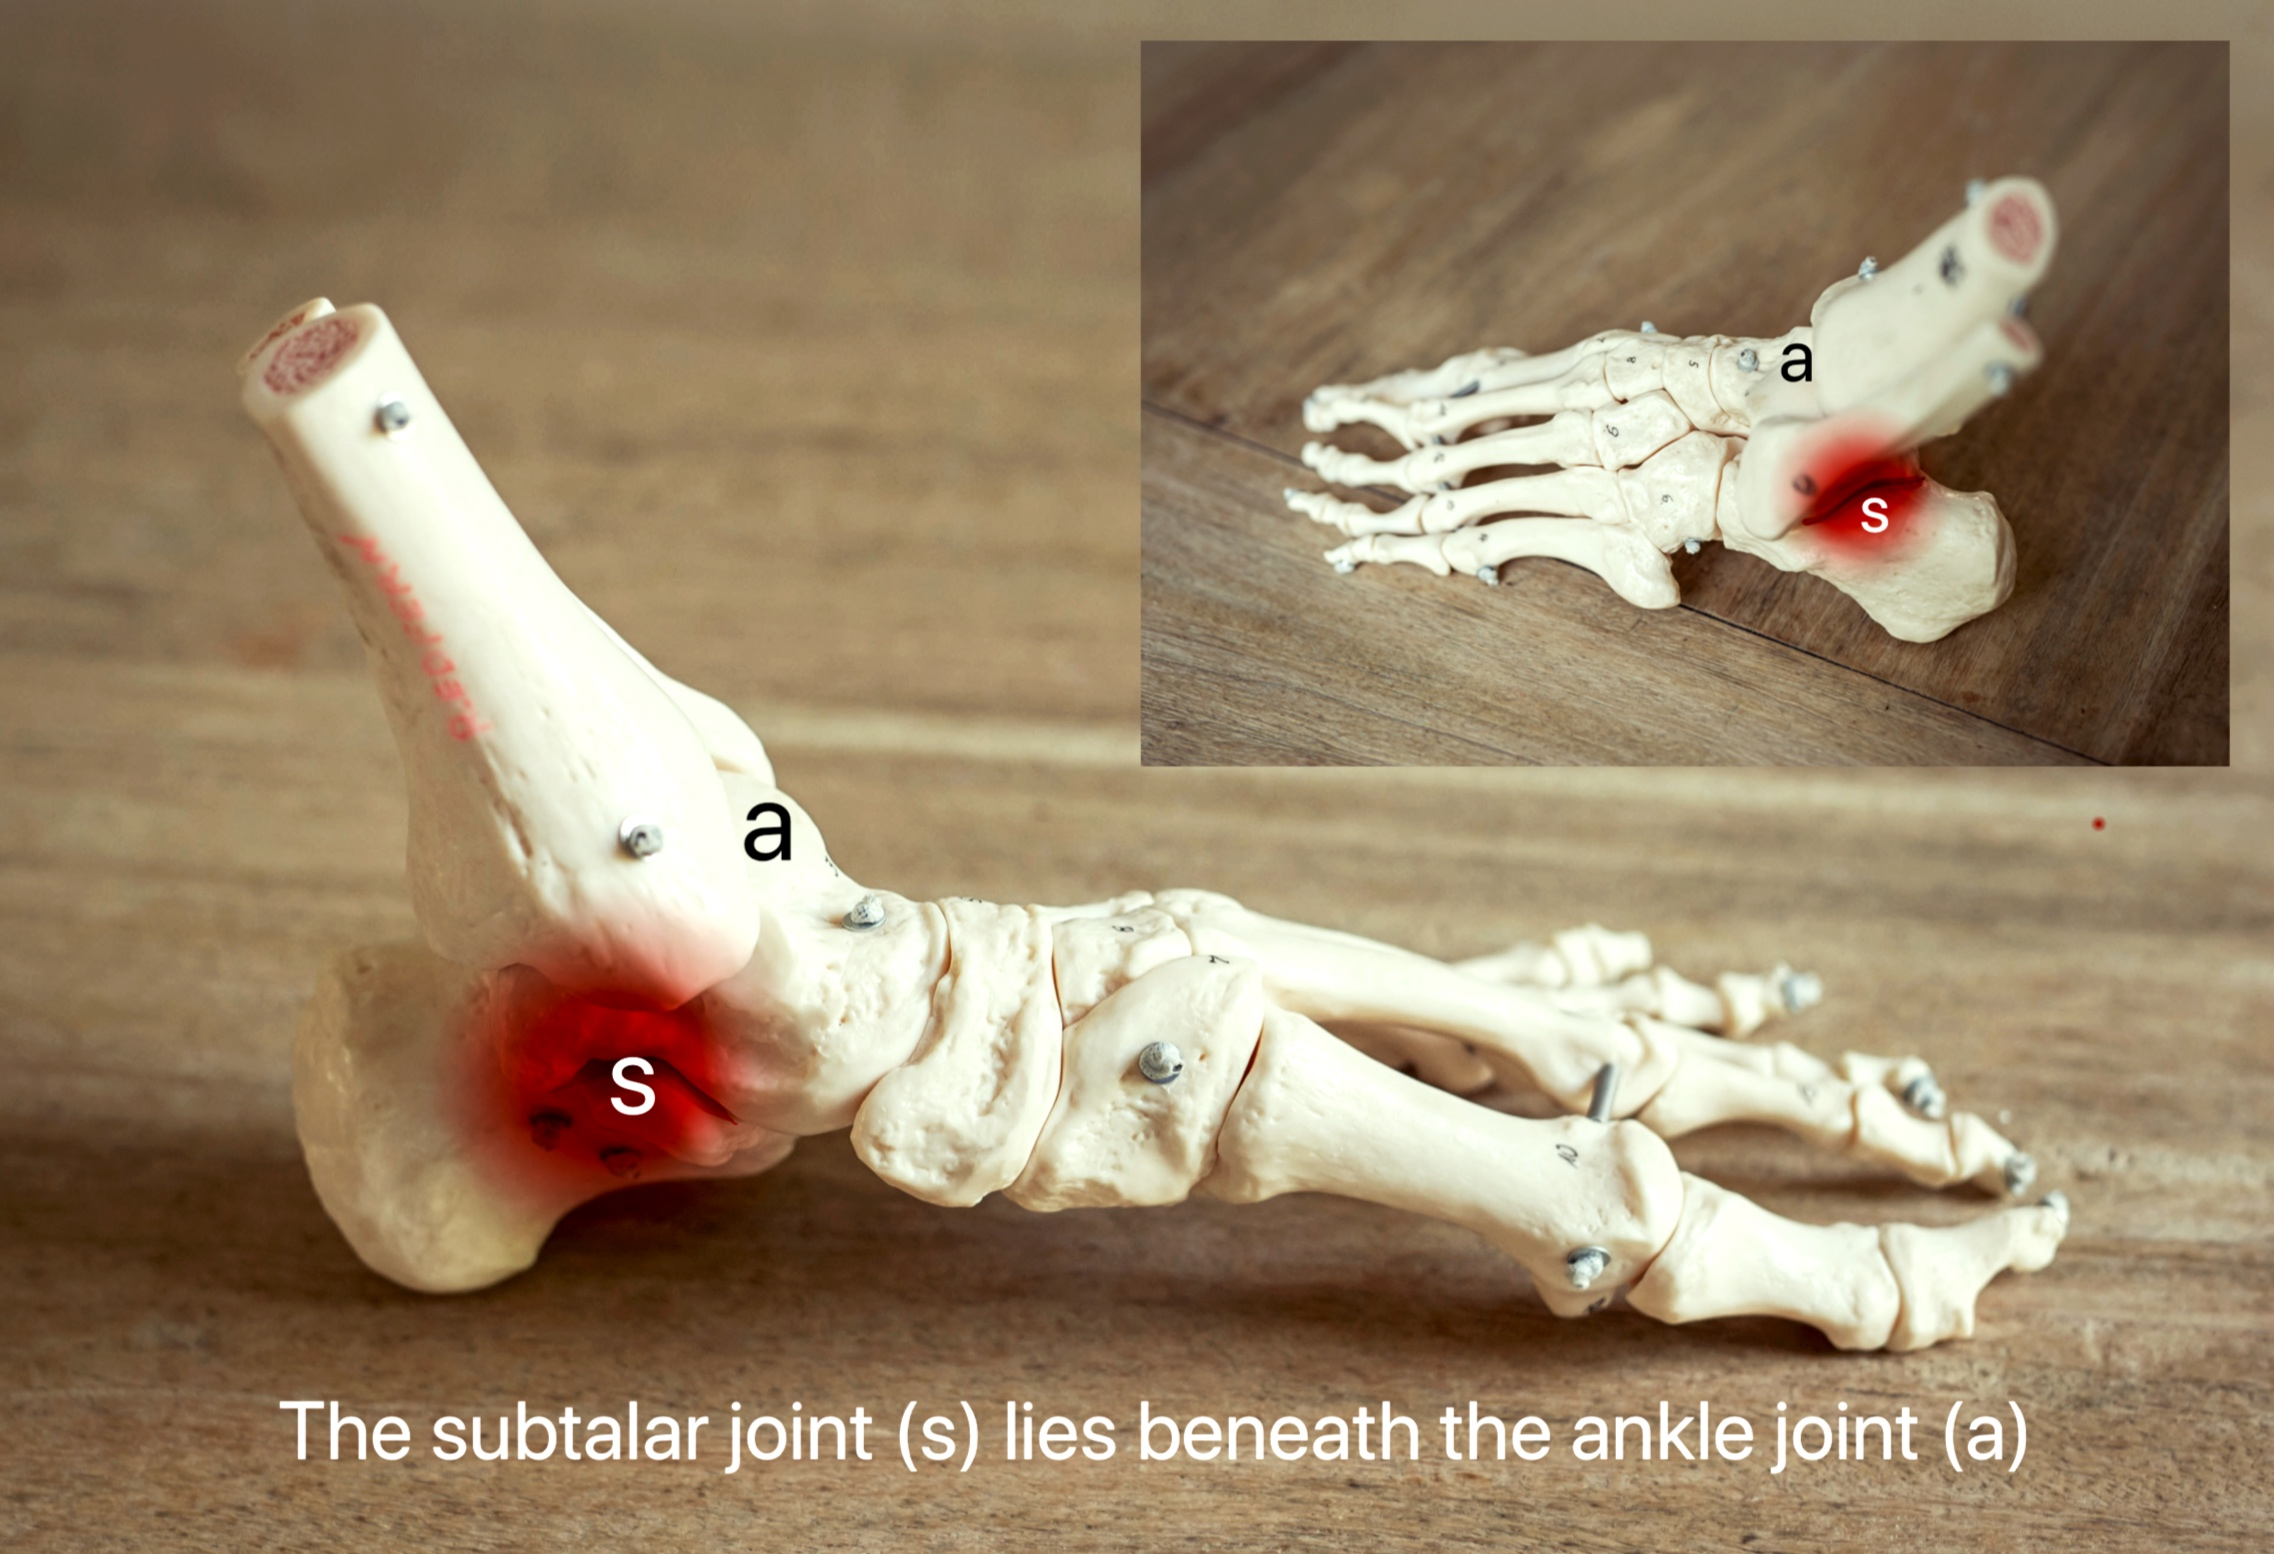 The subtalar joint - This joint lies beneath the ankle joint and allows side to side movement of the heel bone. Pain from this joint is often worst when walking over uneven ground.